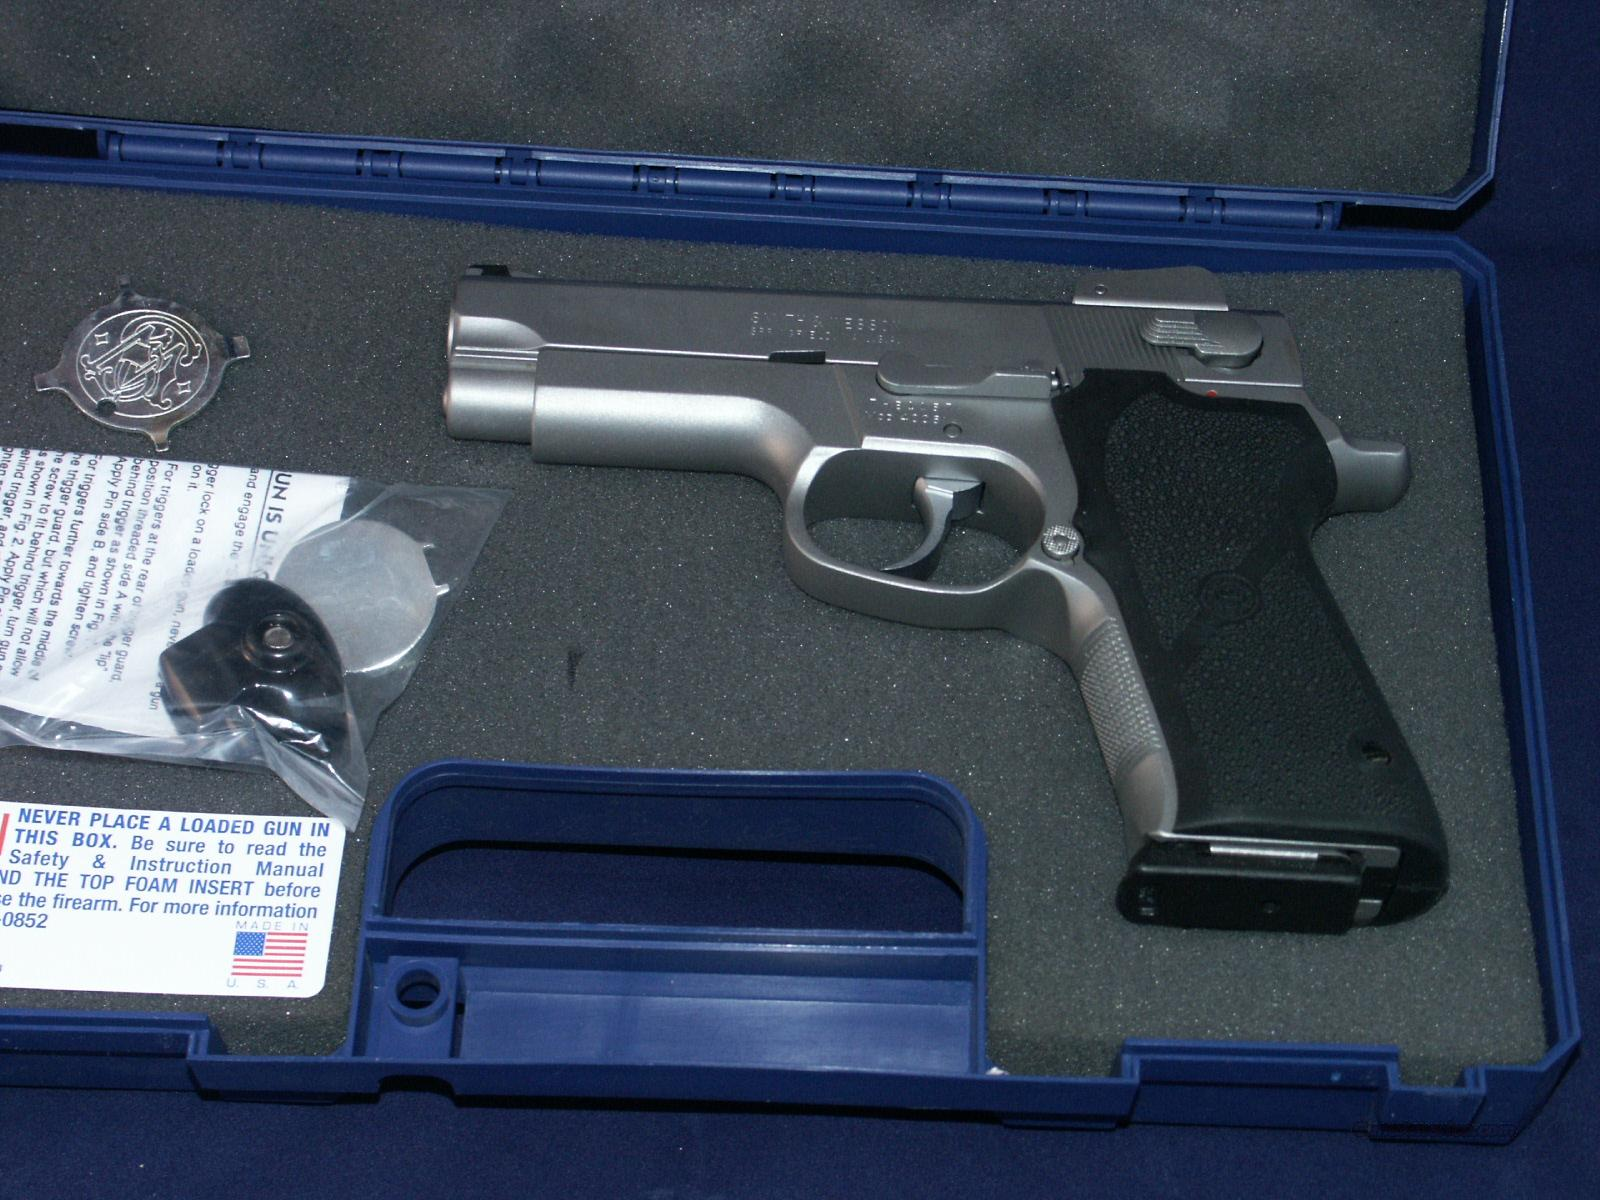 Smith & Wesson Model 4006 SA/DA Almost New  Guns > Pistols > Smith & Wesson Pistols - Autos > Steel Frame